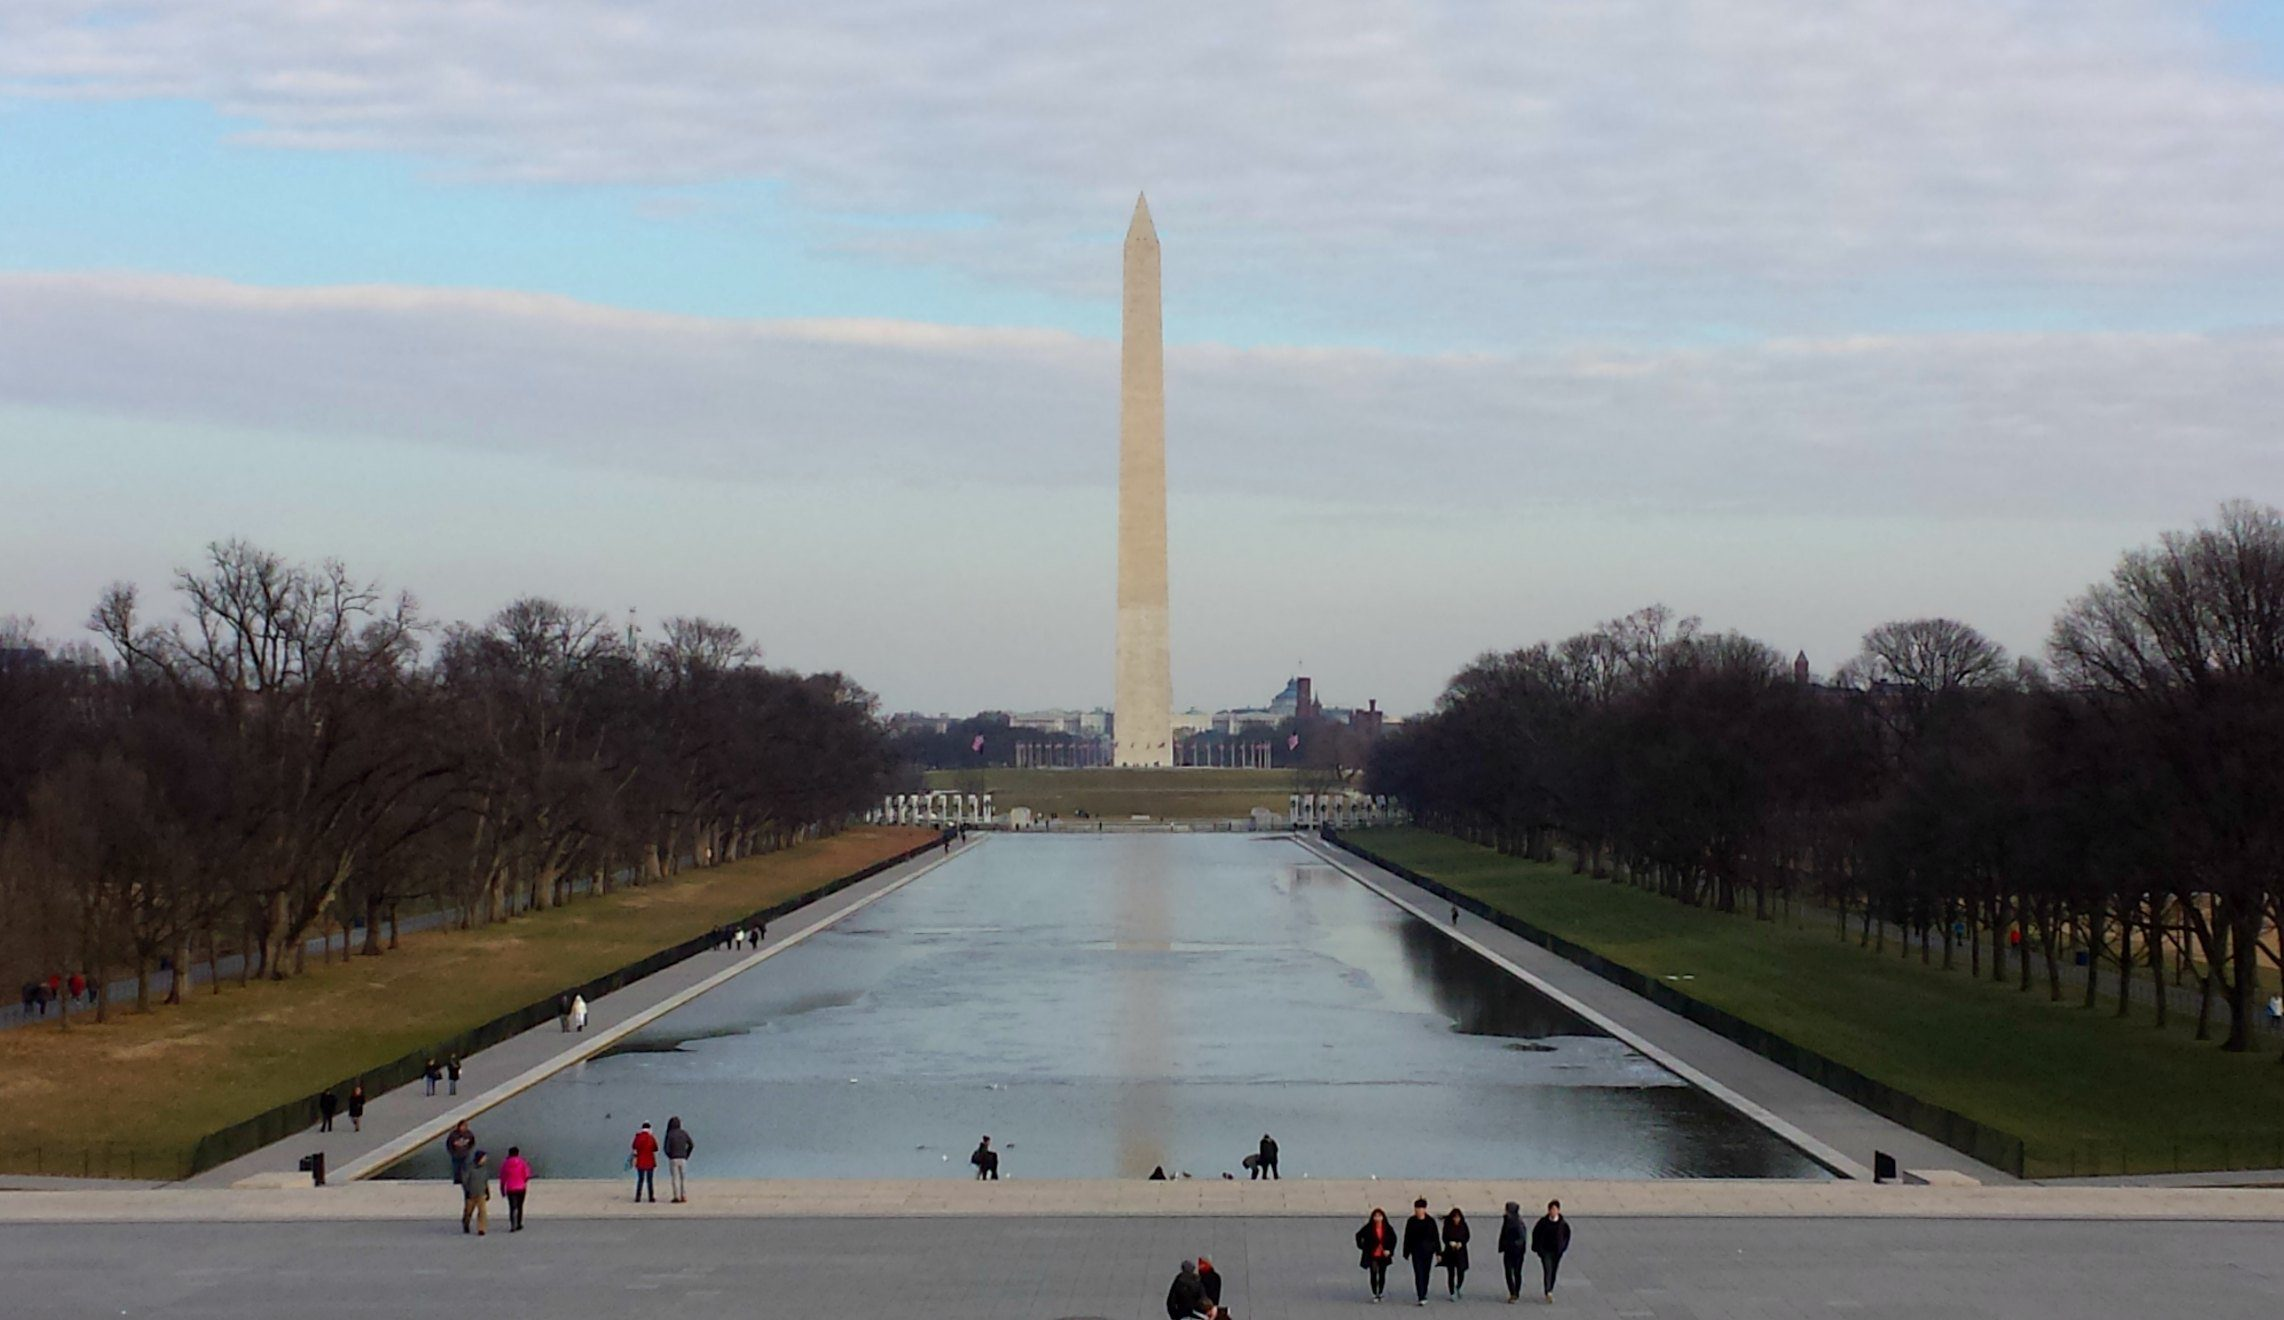 The Washington Monument over the Reflecting Pool in the National Mall, Washington DC